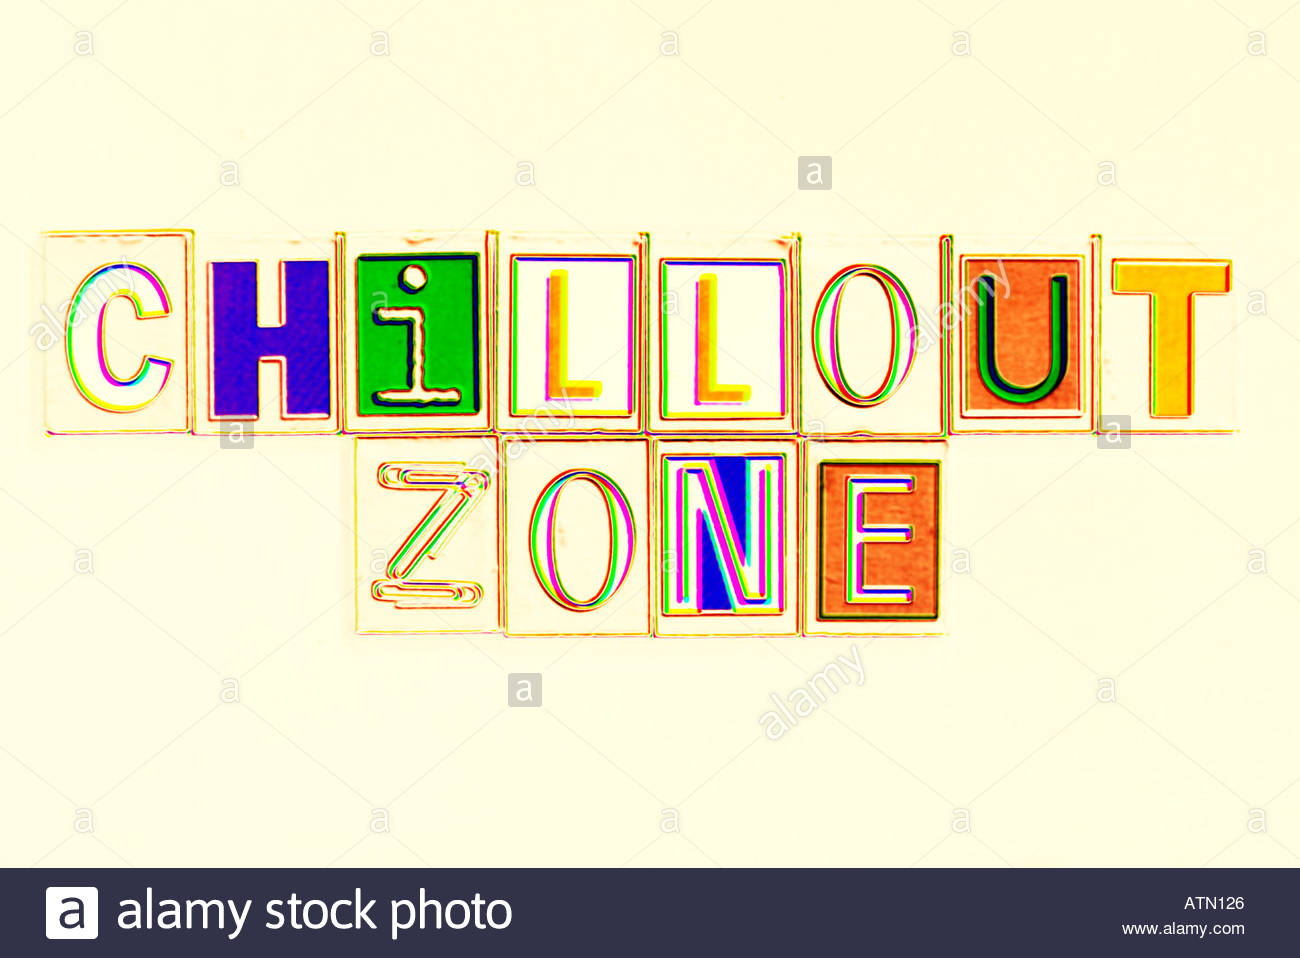 chillout zone stock photos chillout zone stock images alamy. Black Bedroom Furniture Sets. Home Design Ideas